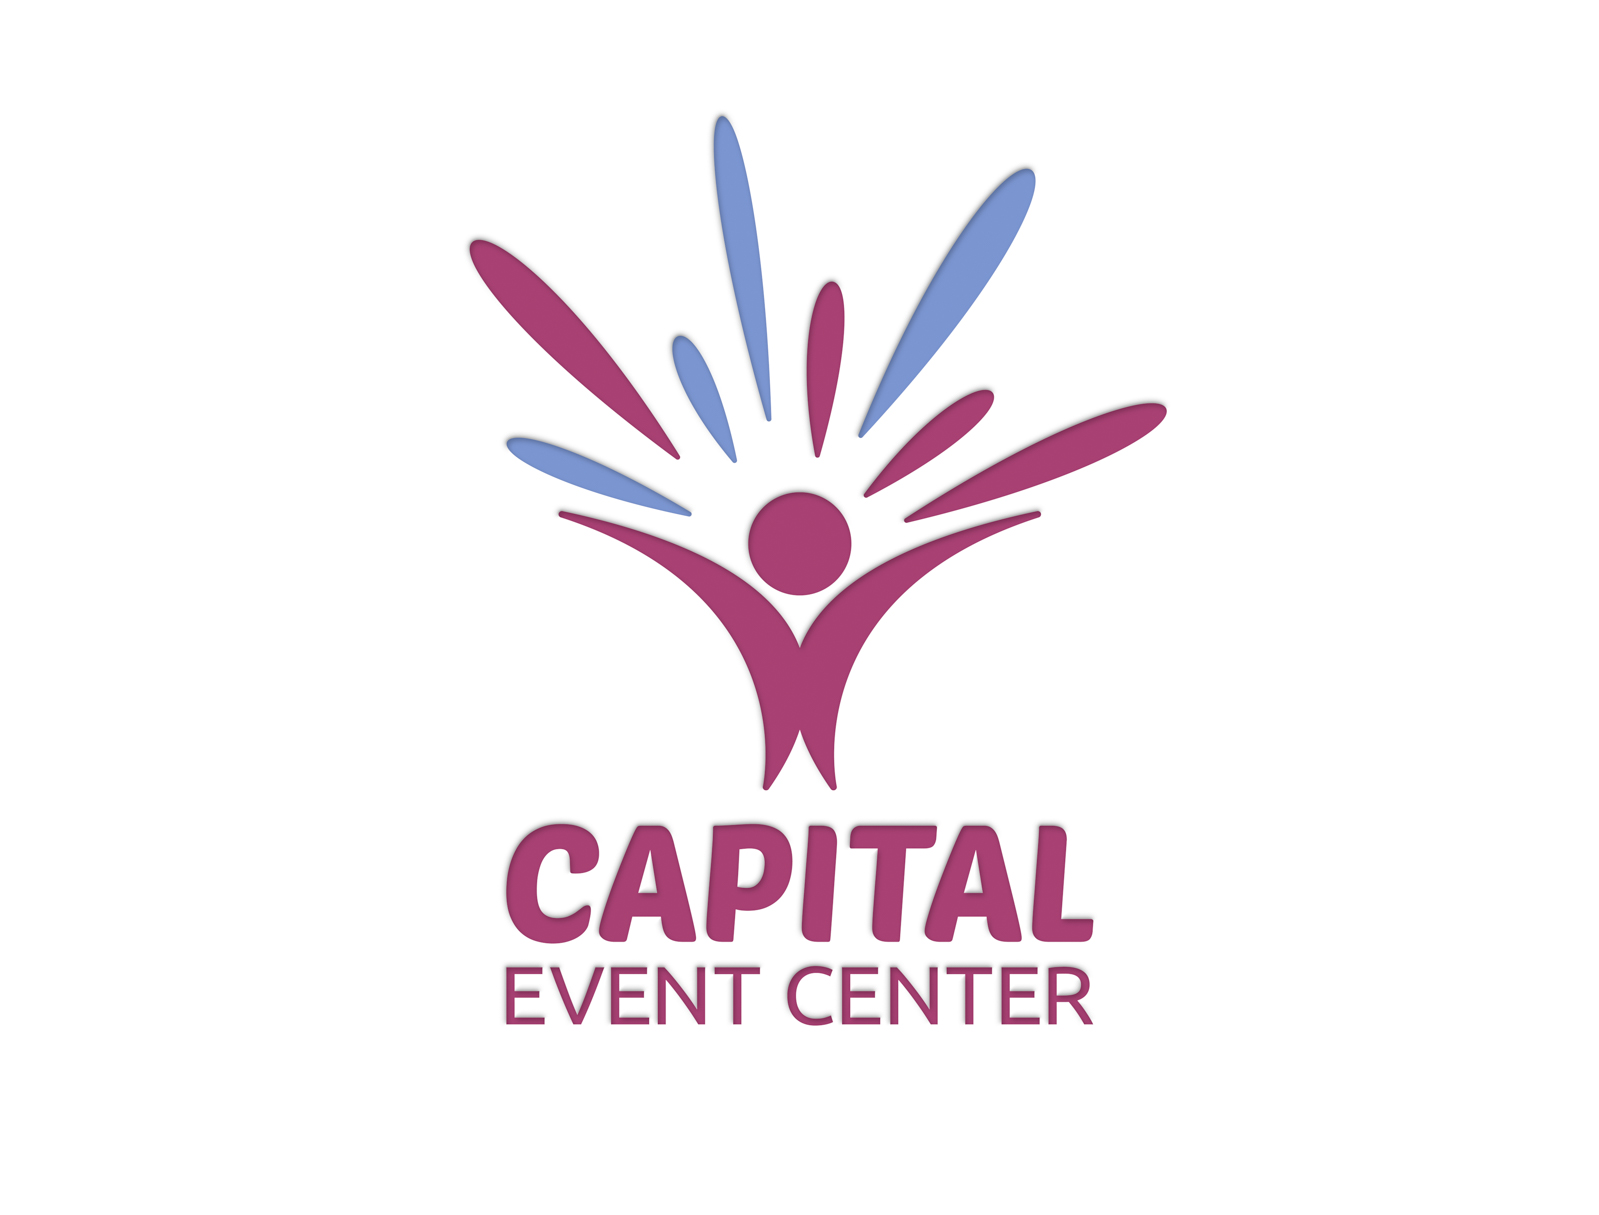 Event Center Capital